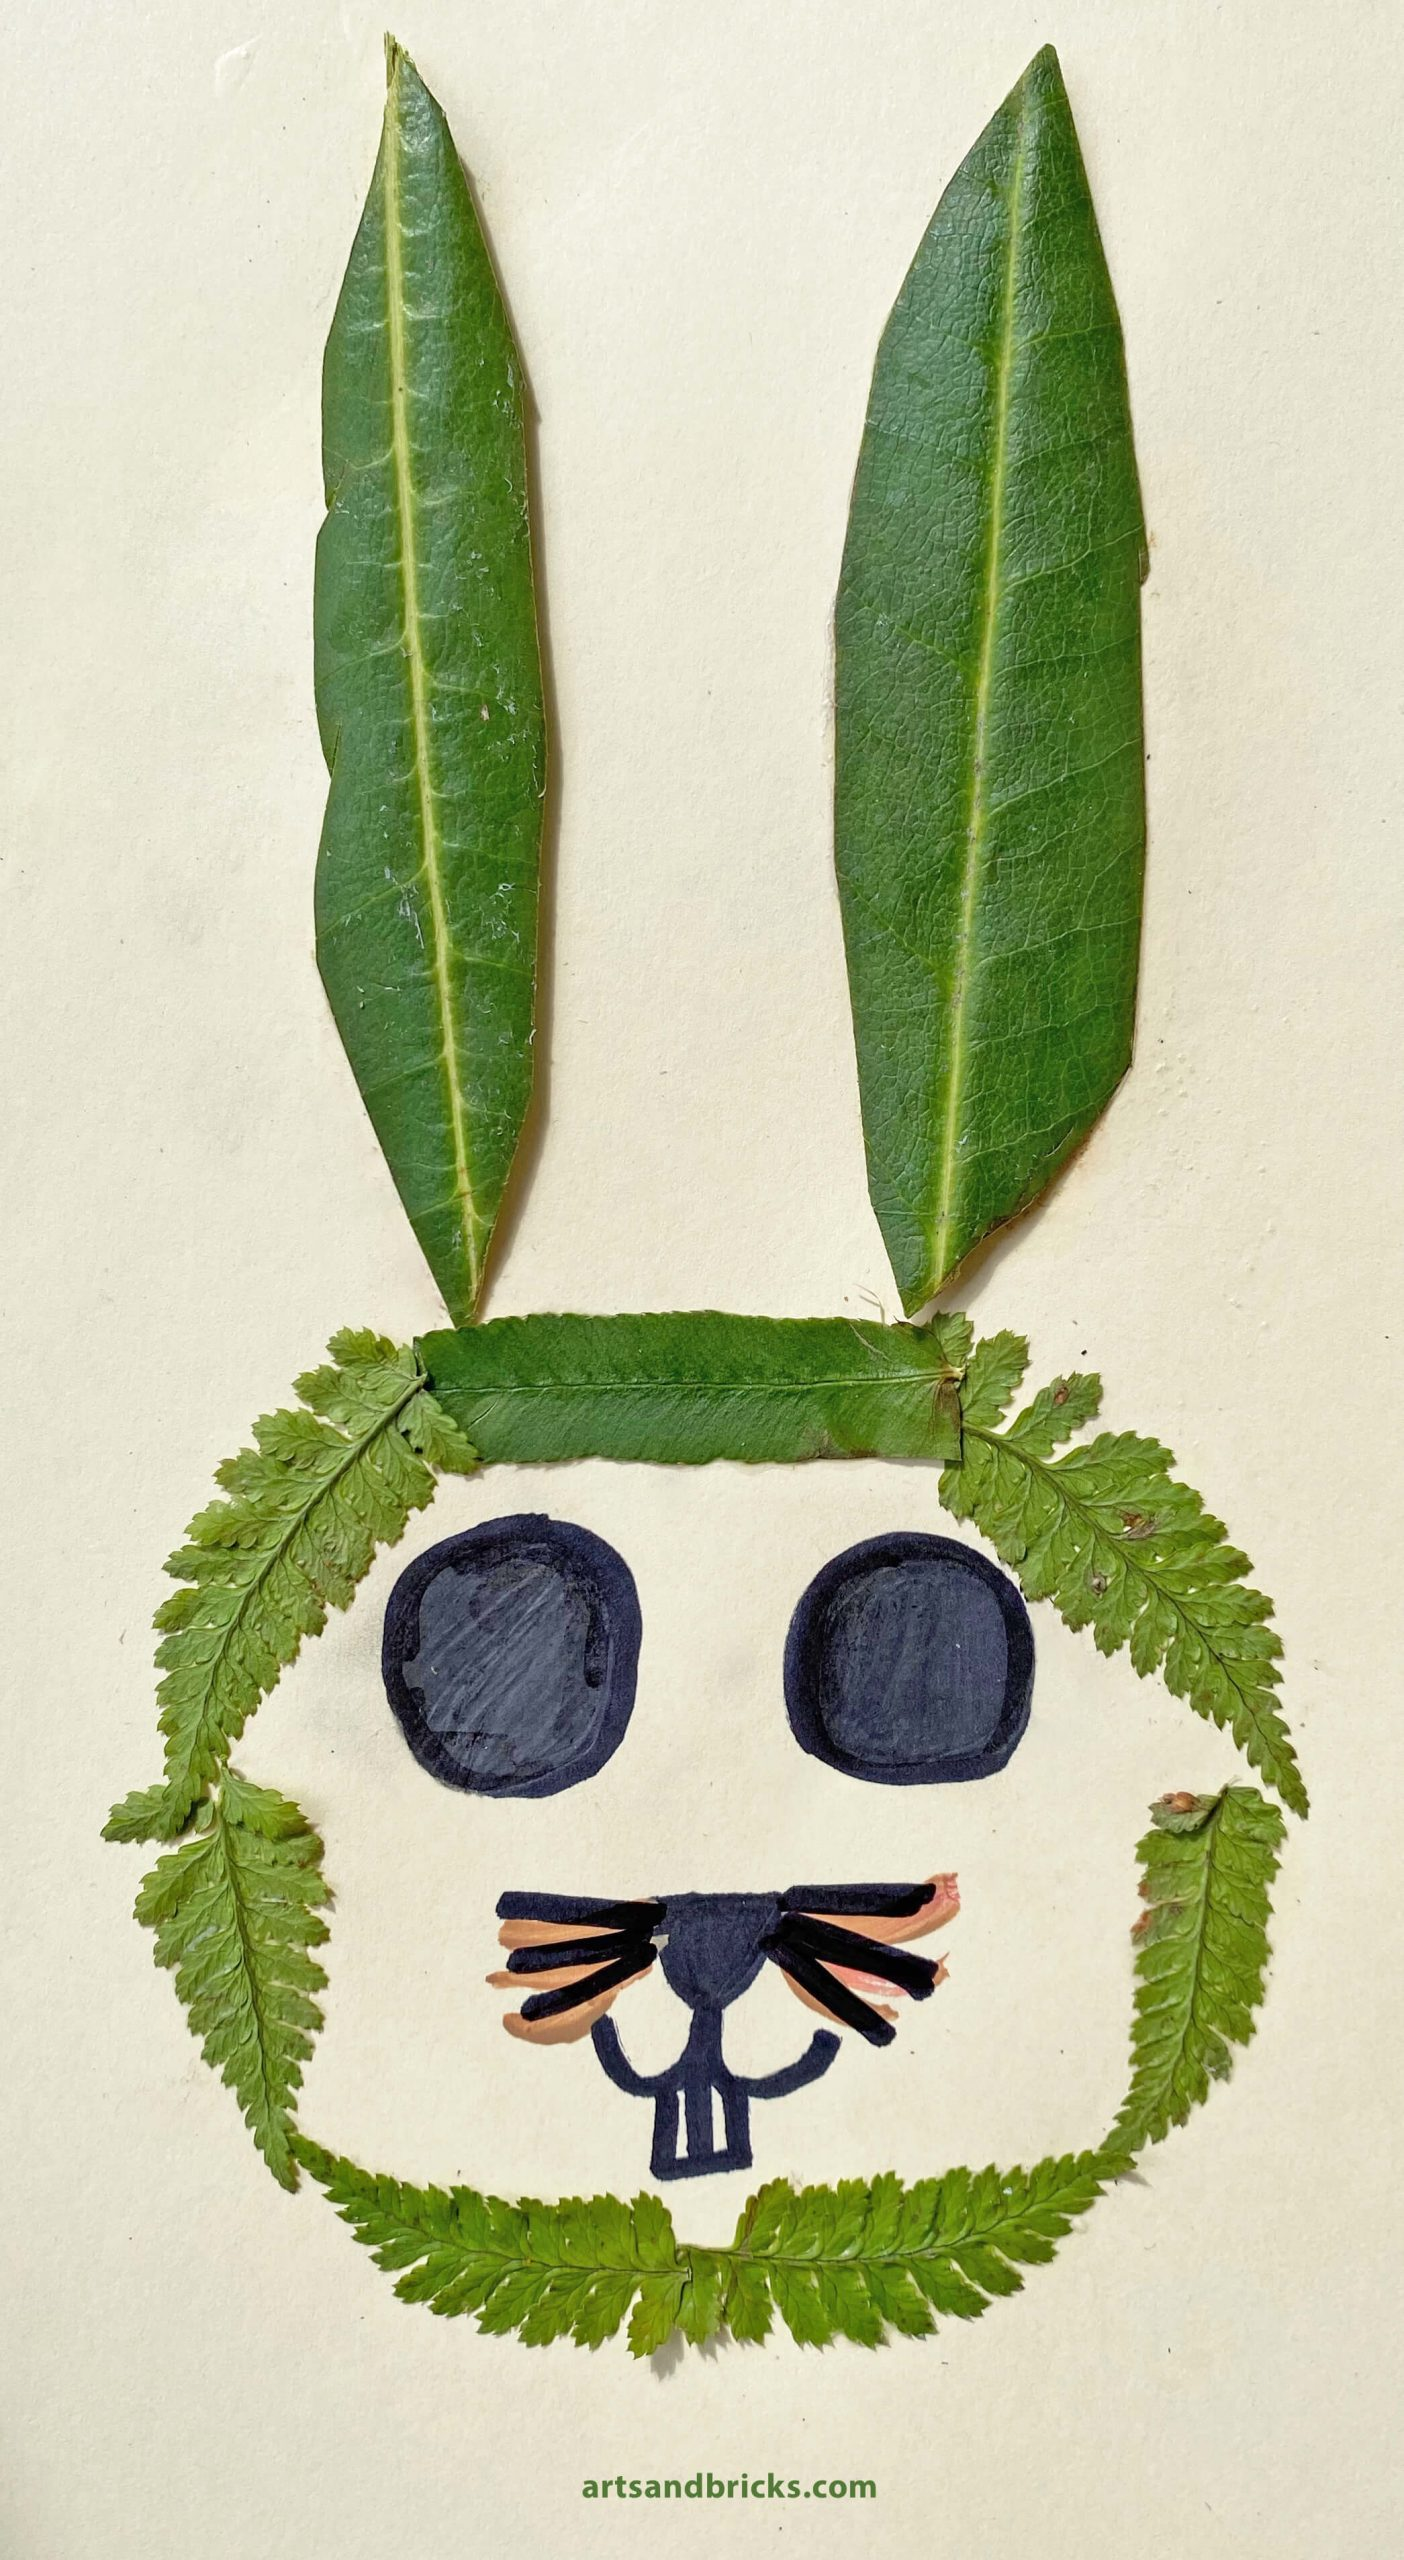 Easter Bunny Collage made from ferns and Rhododendron leaves.